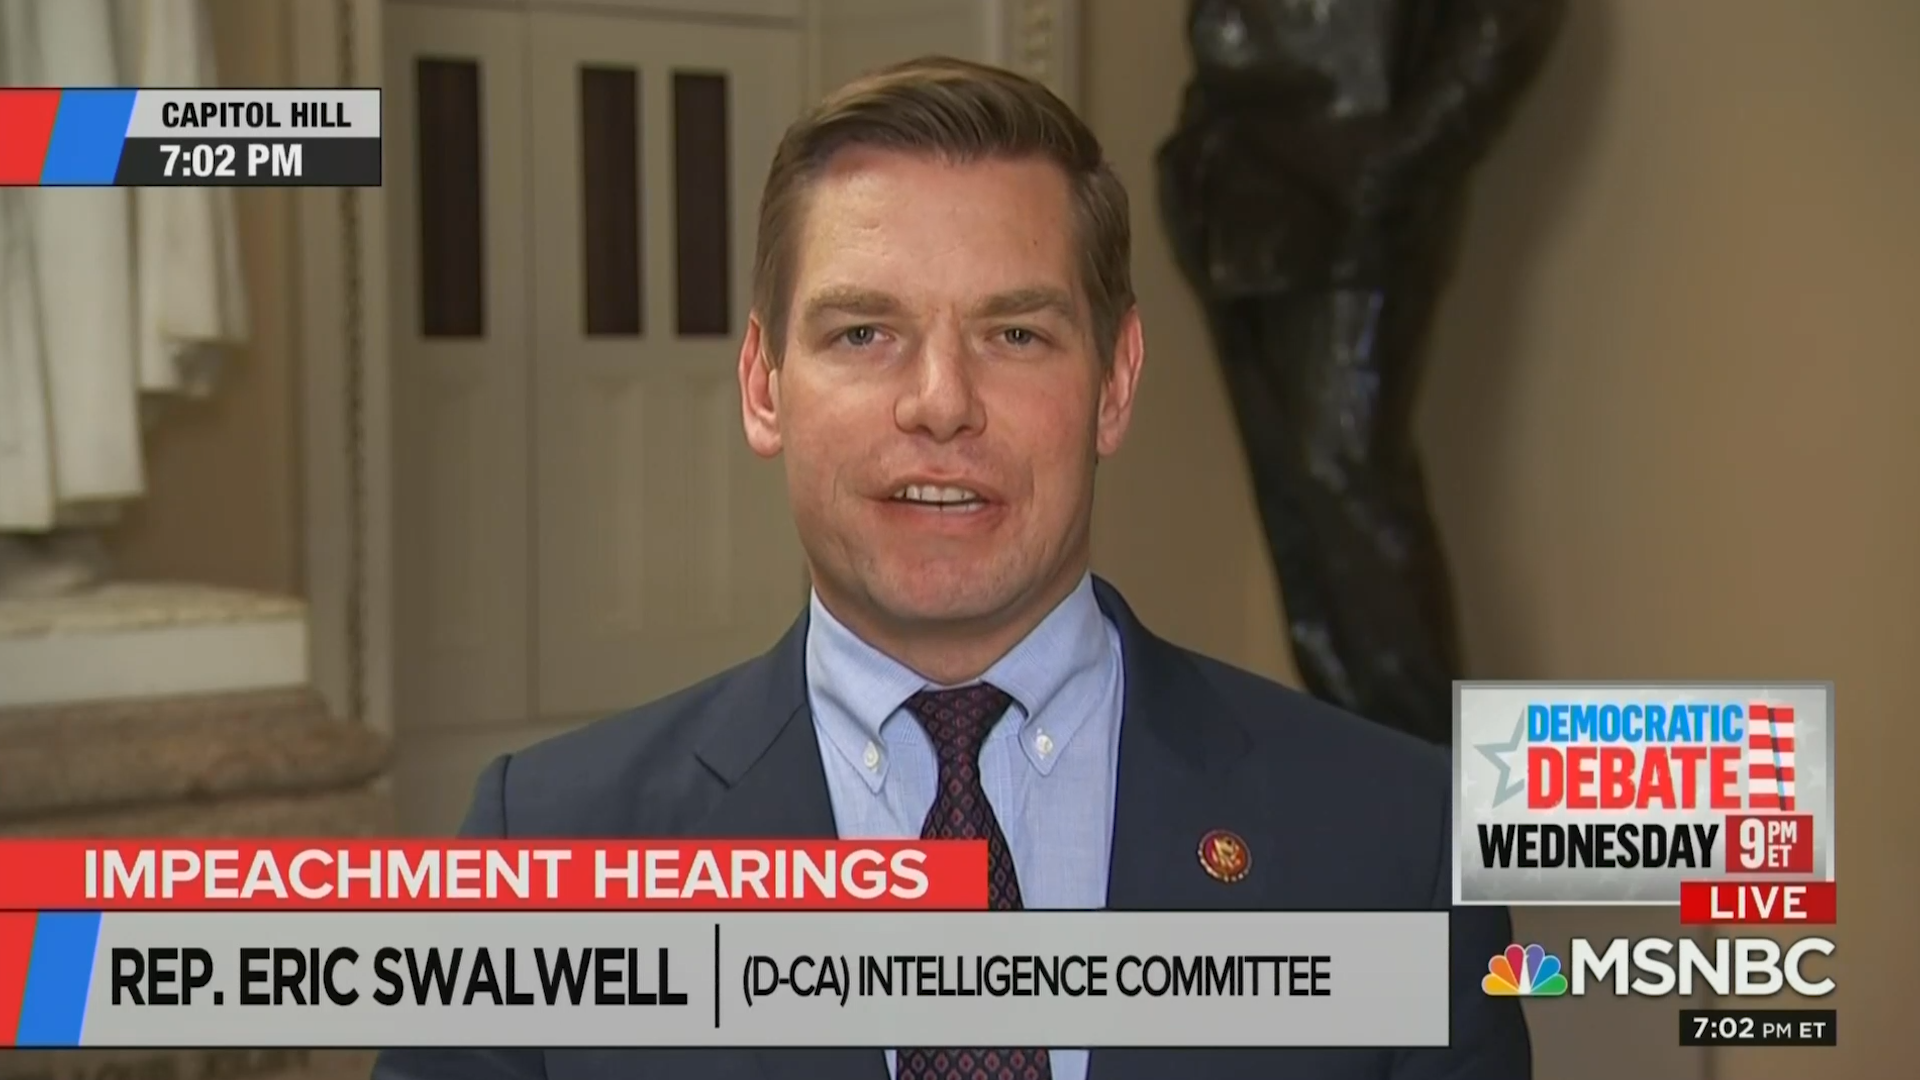 'Fartgate' trending after congressman appears to break wind during live interview